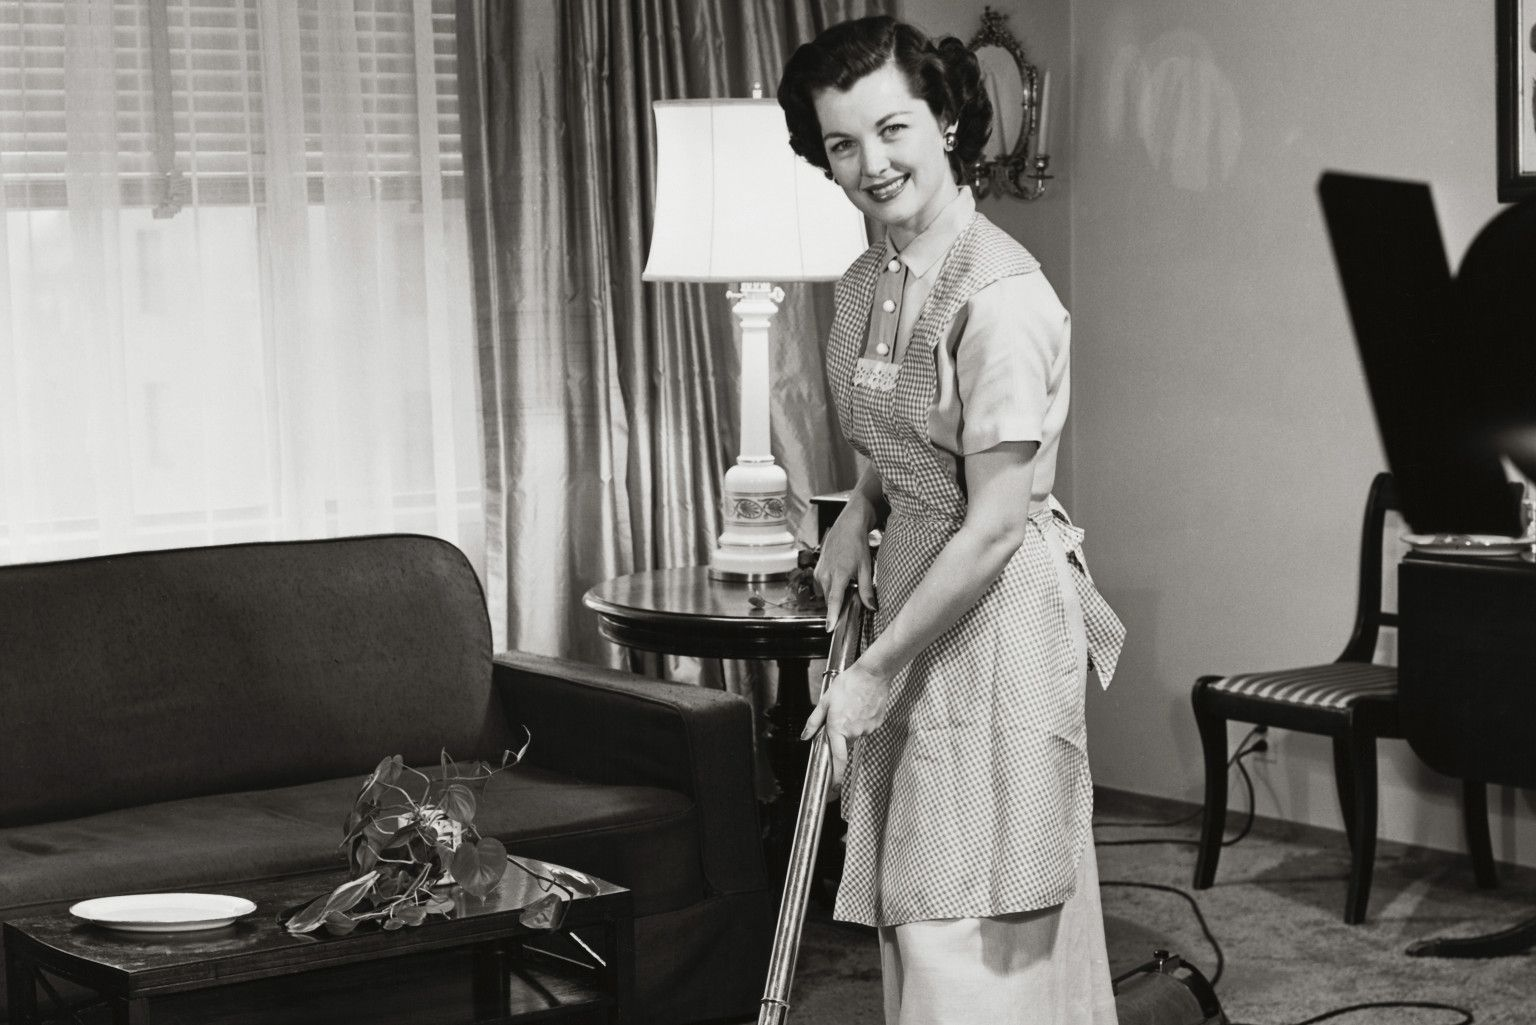 Check out this 1950's Daily Cleaning Routine